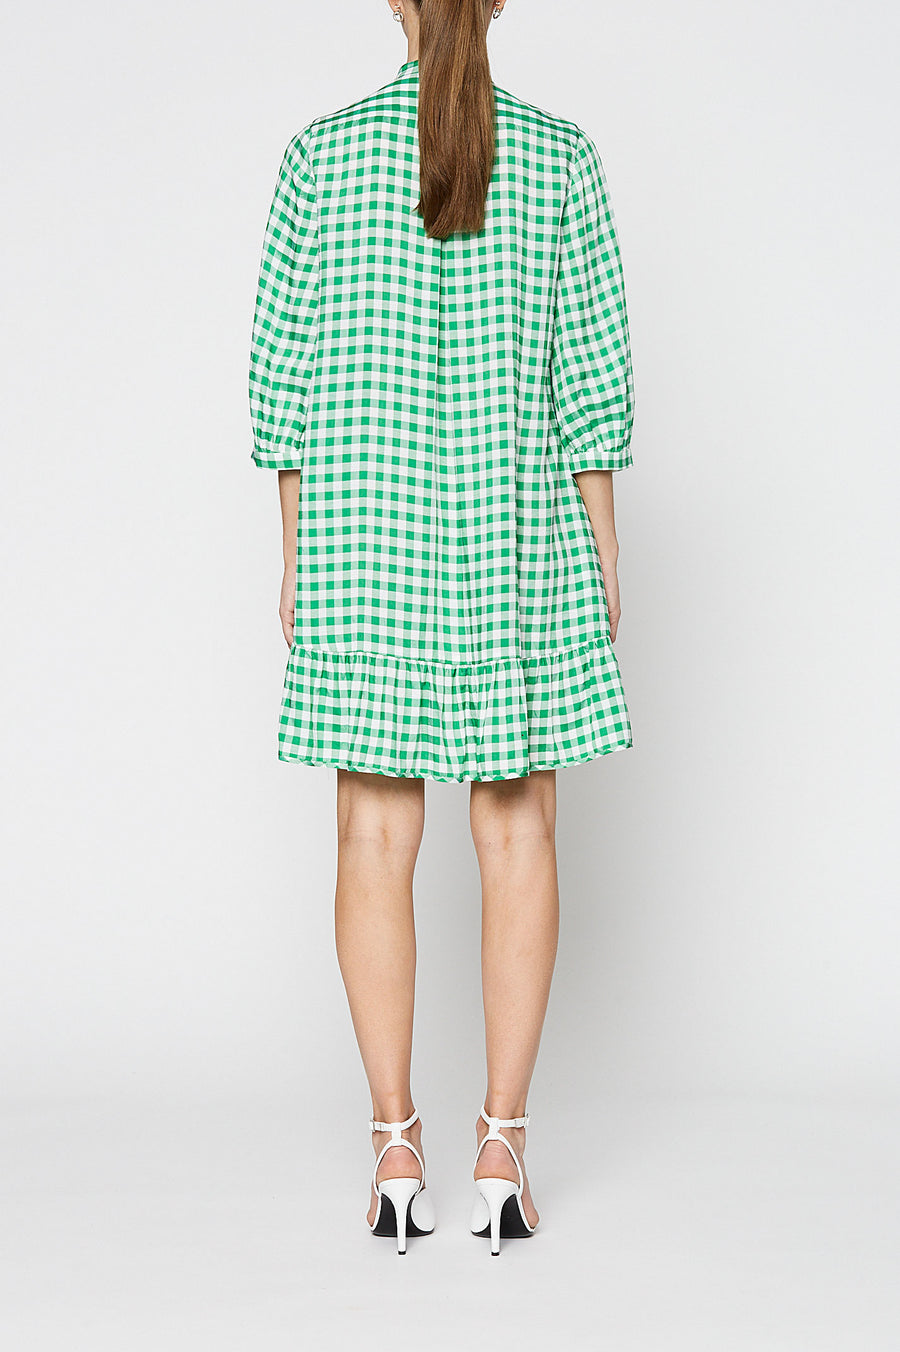 GINGHAM RUFFLE DRESS, EMERALD color